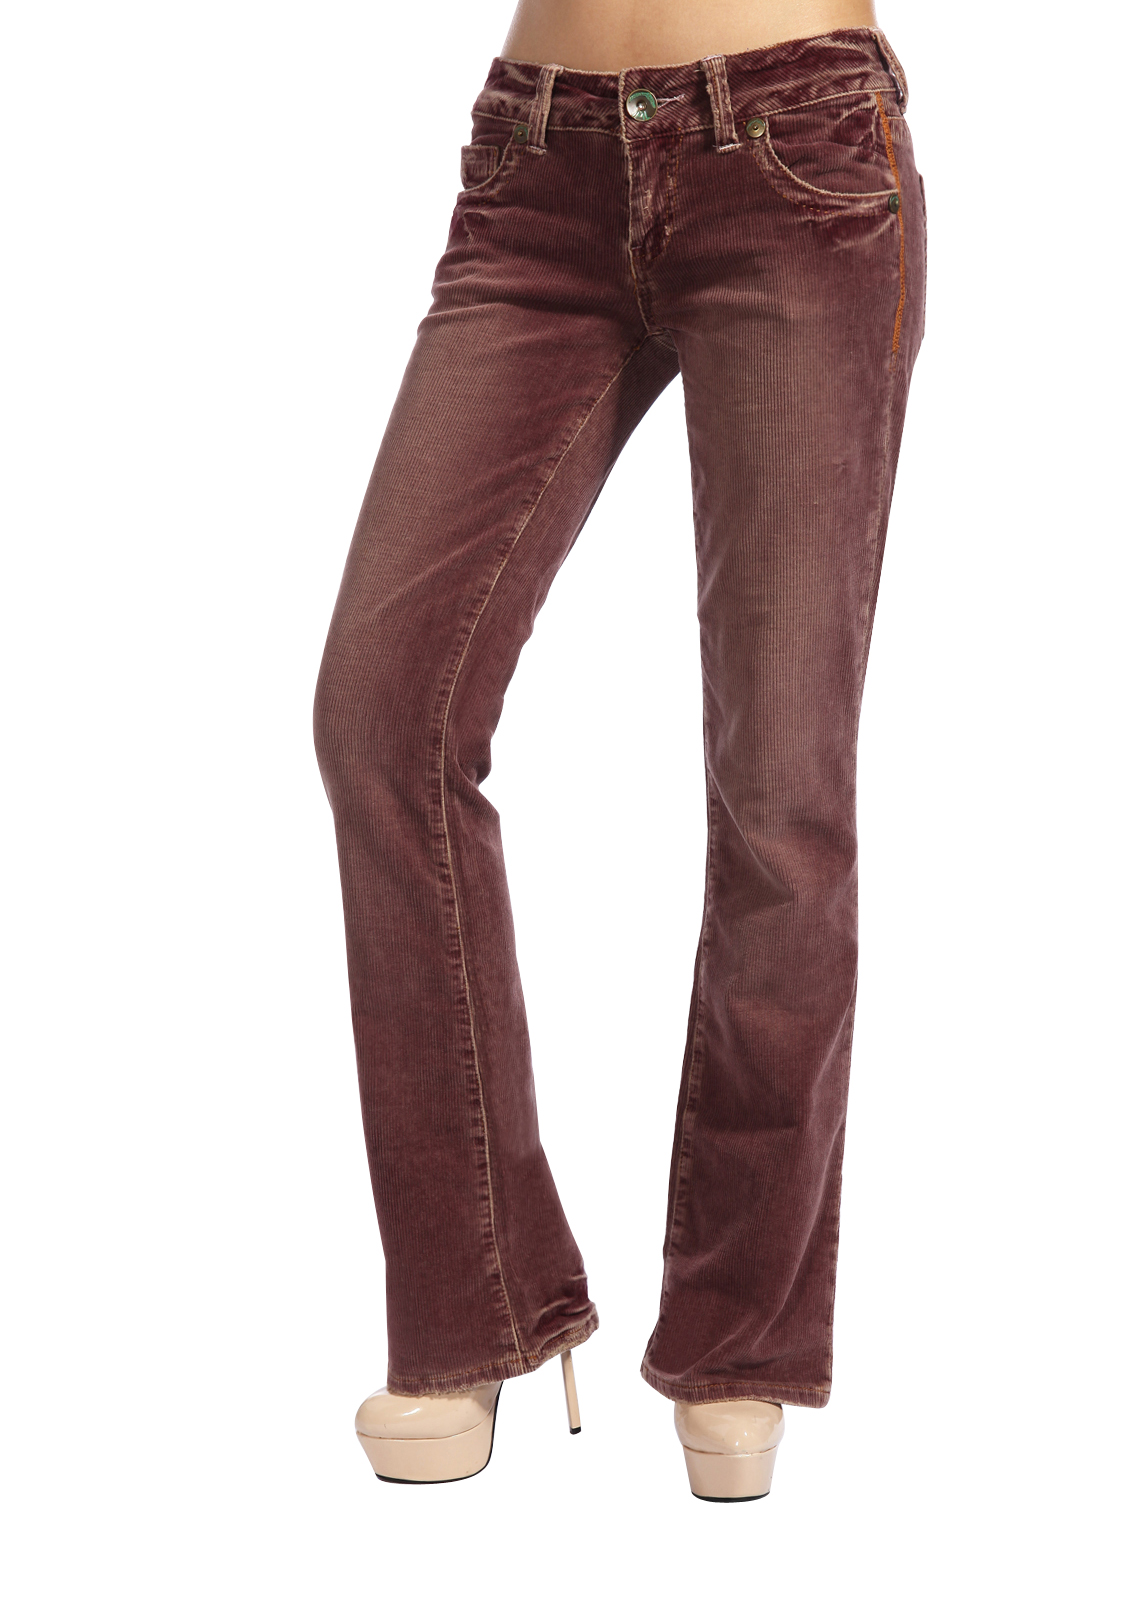 Find great deals on eBay for red corduroy jeans. Shop with confidence.